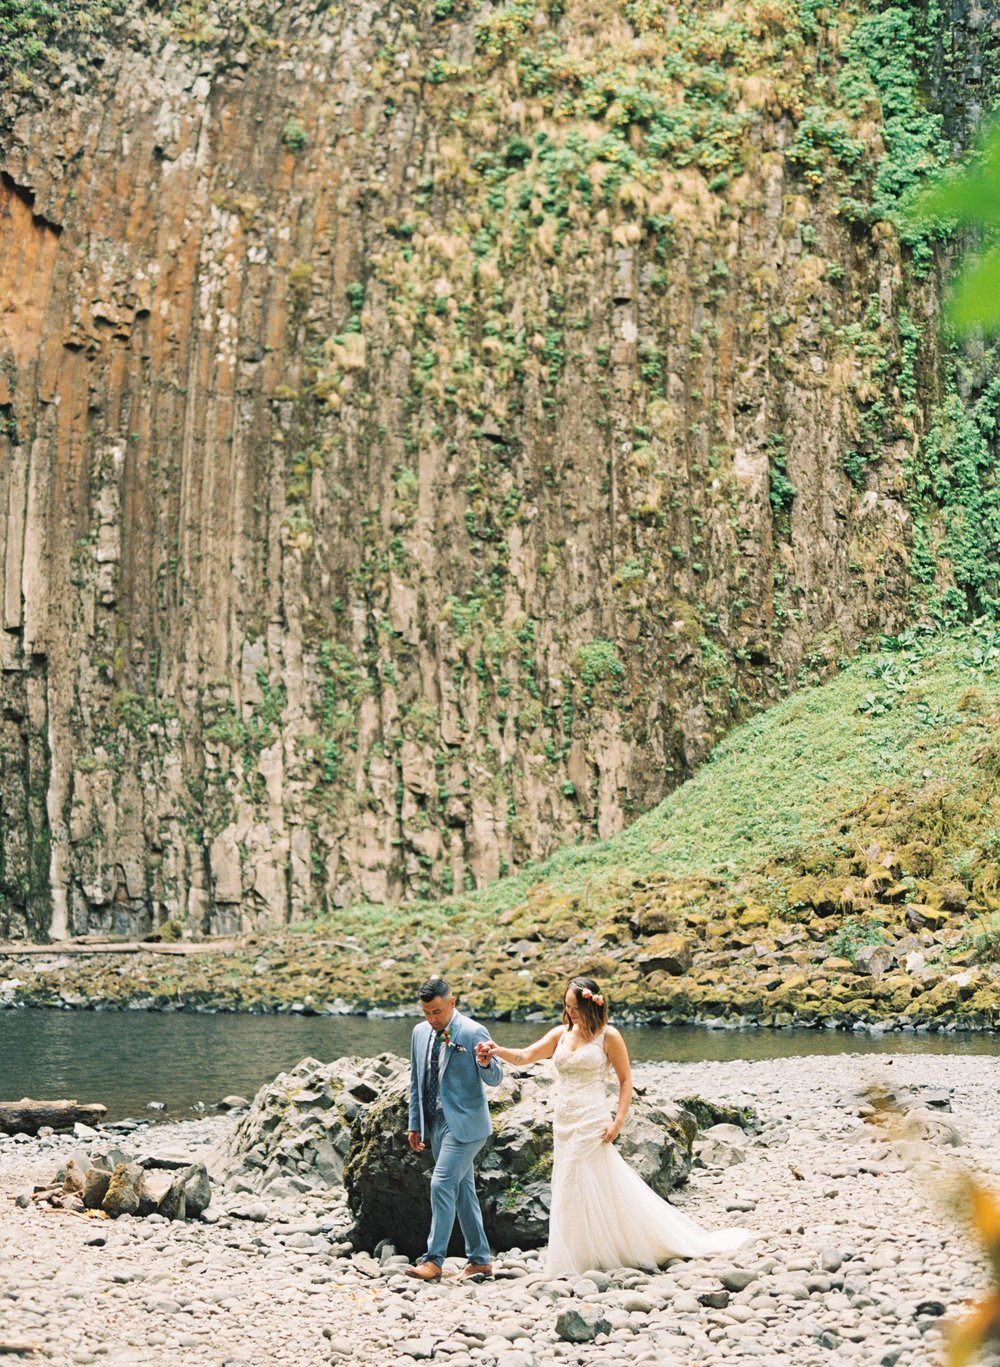 abiqua_falls_elopement_wedding_oregon_photographer_videographer_109.jpg